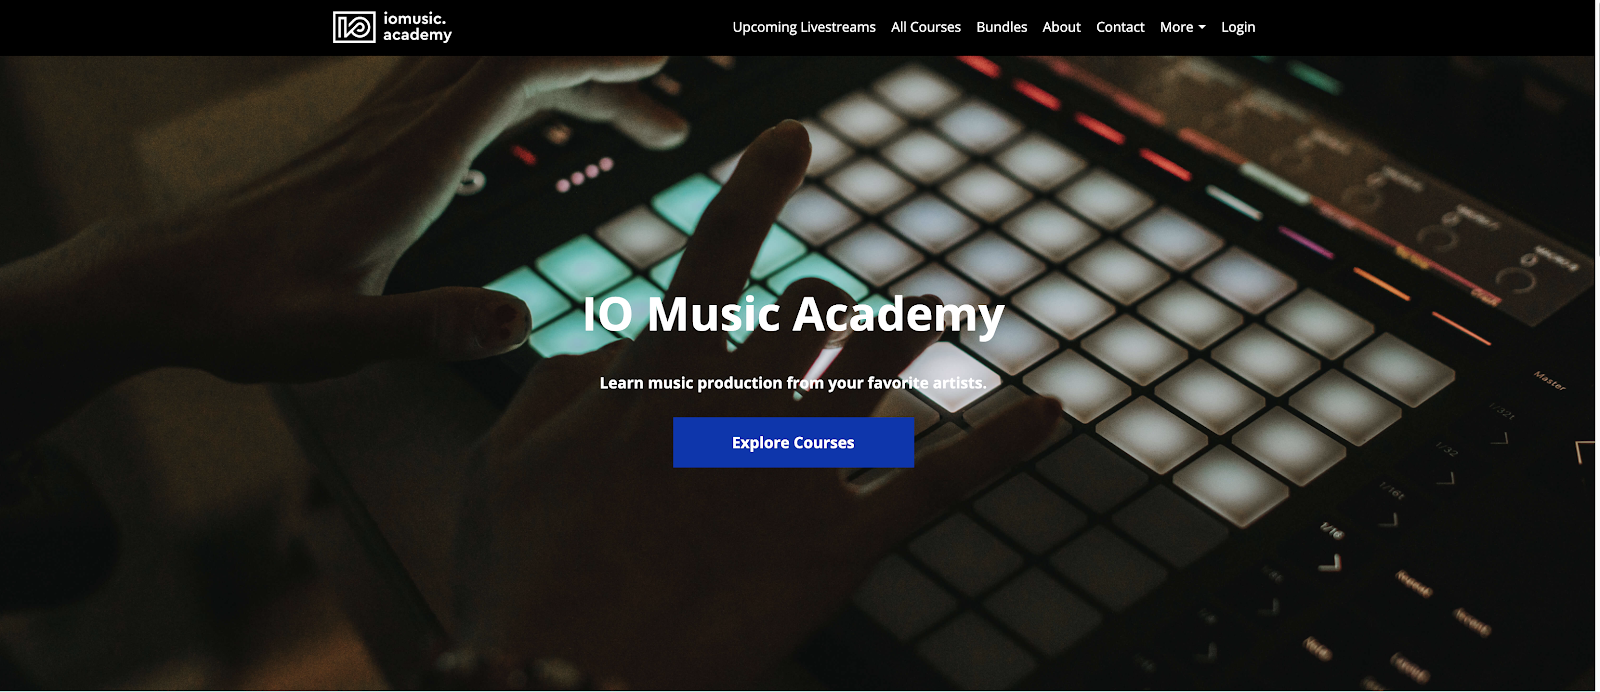 Homepage of IO Music Academy featuring a person playing an Ableton Push.